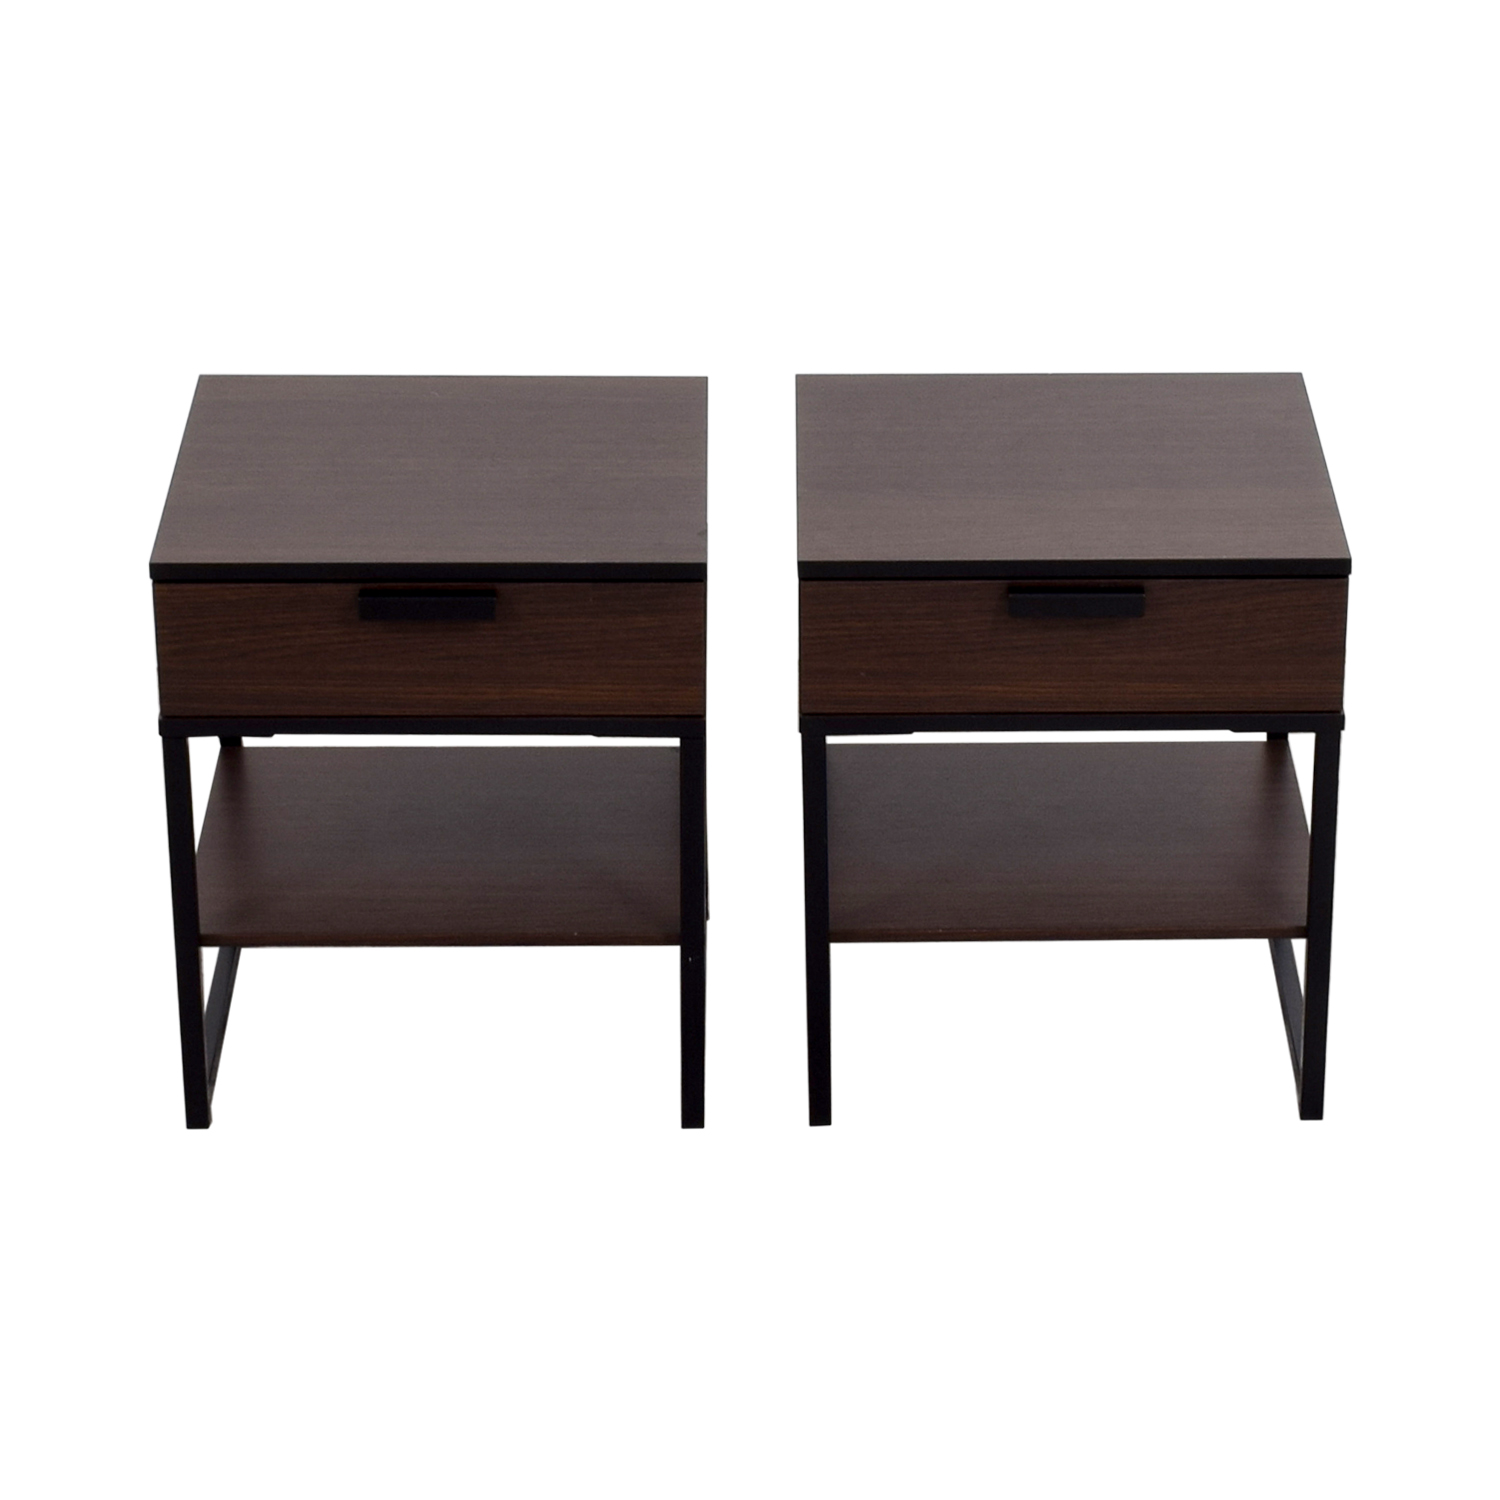 33% OFF IKEA IKEA Modern End Tables Tables